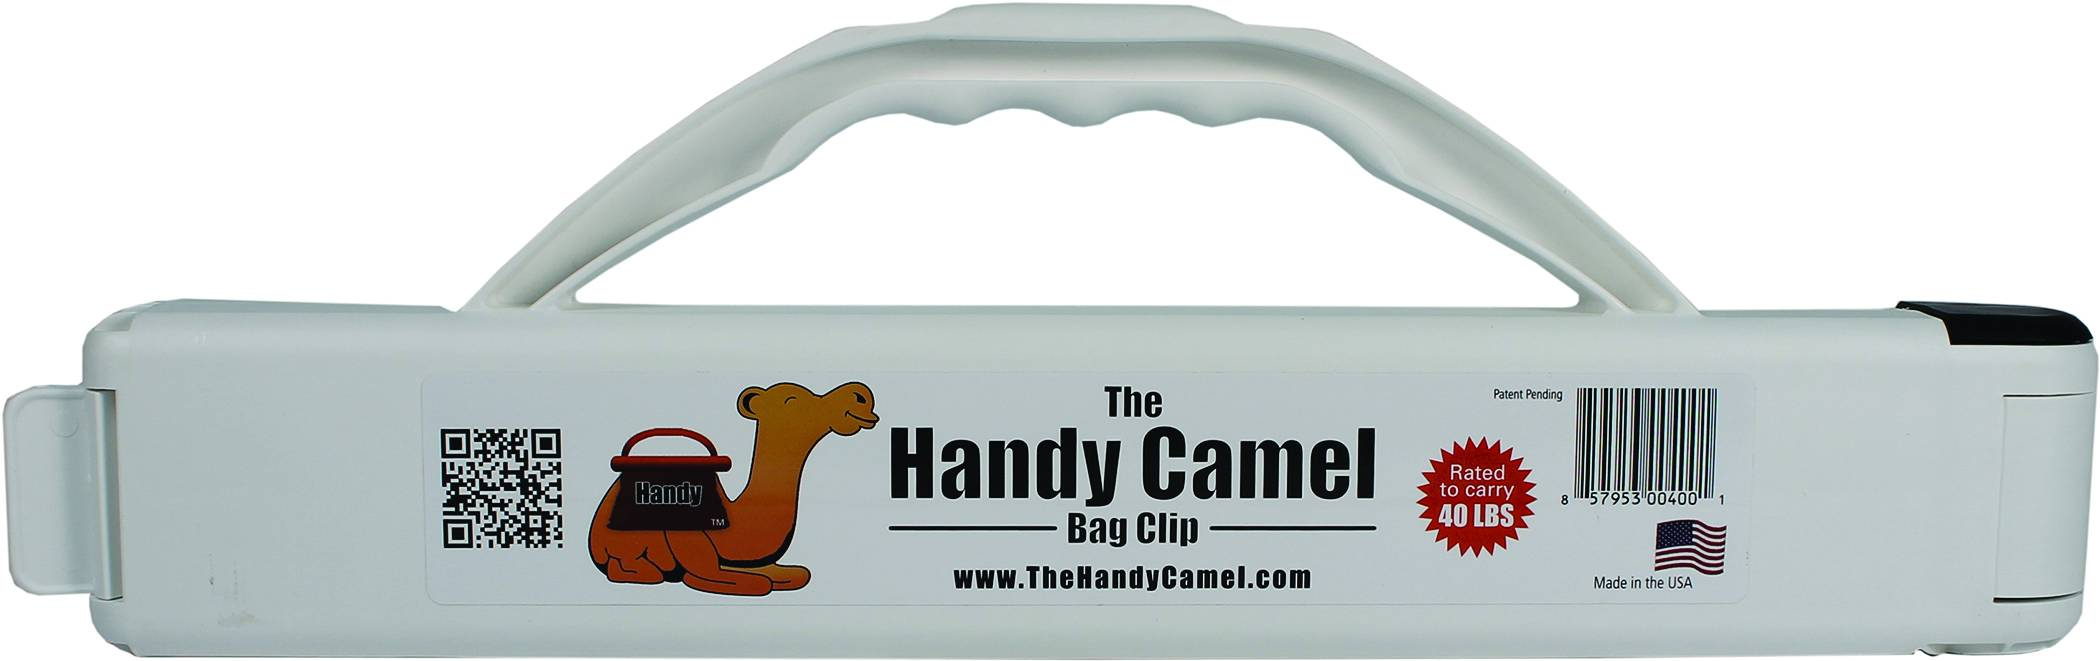 HANDY CAMEL Mini Bag Clip